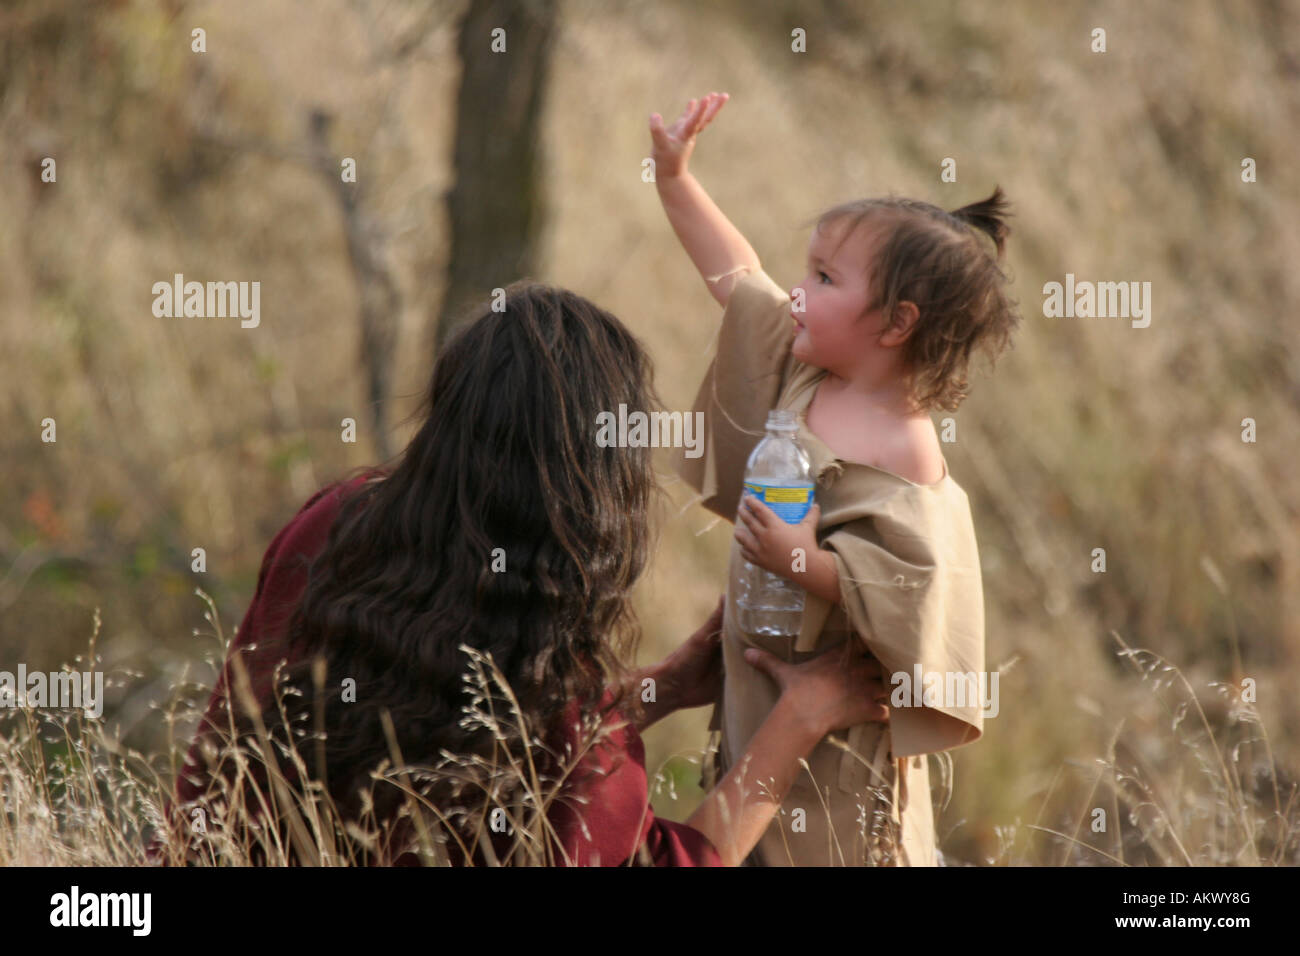 A Native American Indian mother and her daughter sitting outside having a picnic waving to friends - Stock Image